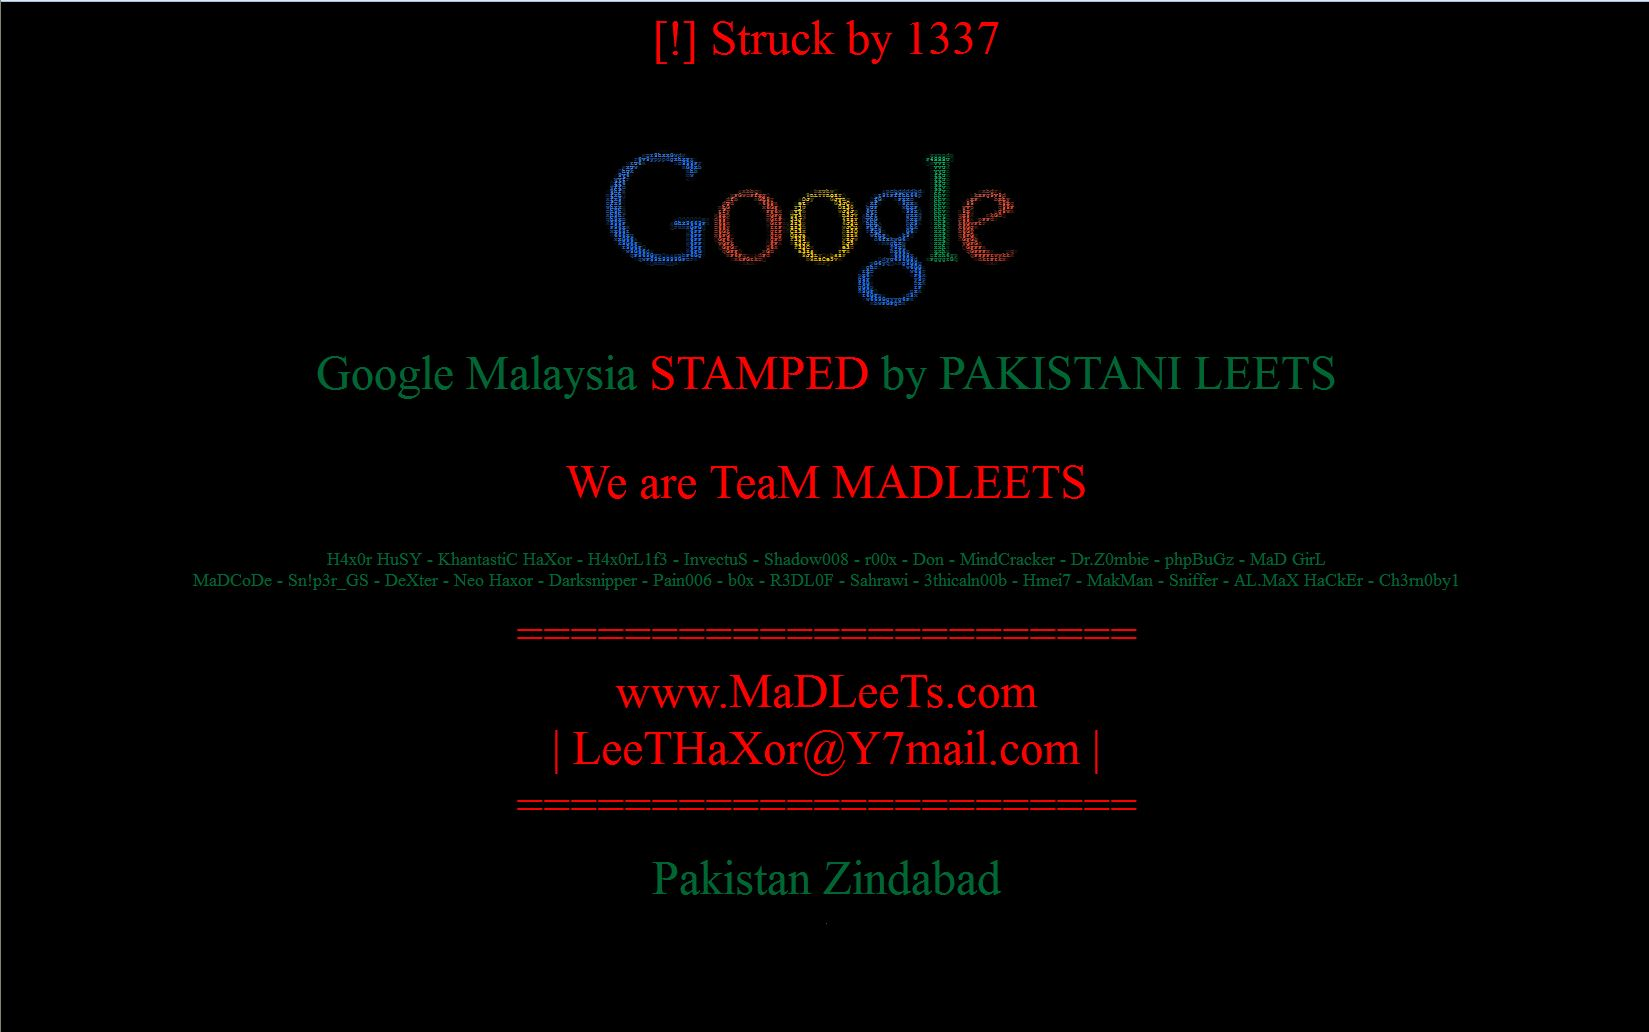 Google Malaysia hit by DNS poisoning (Updated) | The Star Online